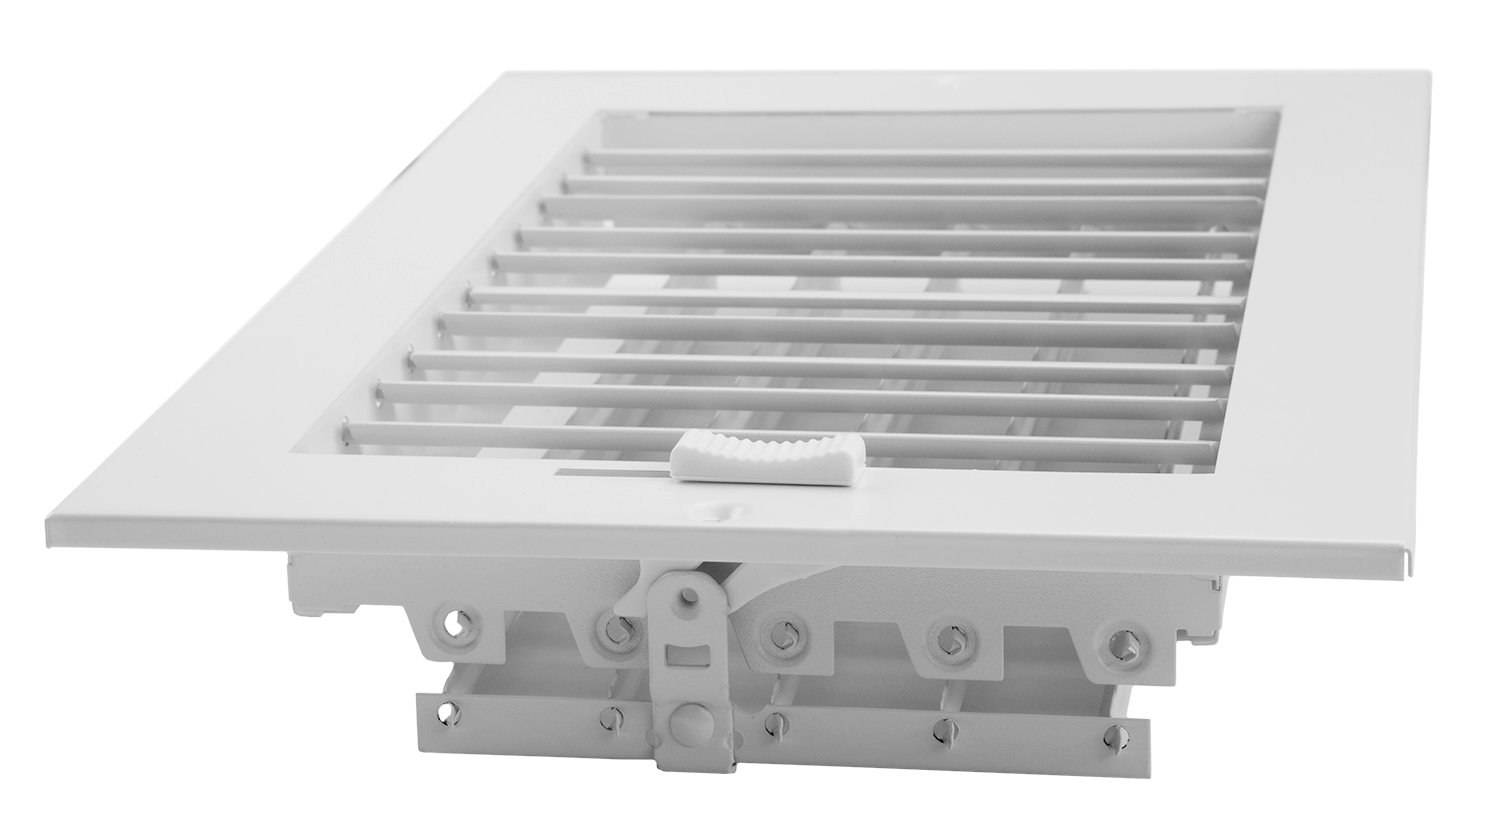 12-Inch x 6-Inch White Duct Opening Measurements Accord ABSWWHA126 Sidewall//Ceiling Register with 1-Way Adjustable Design